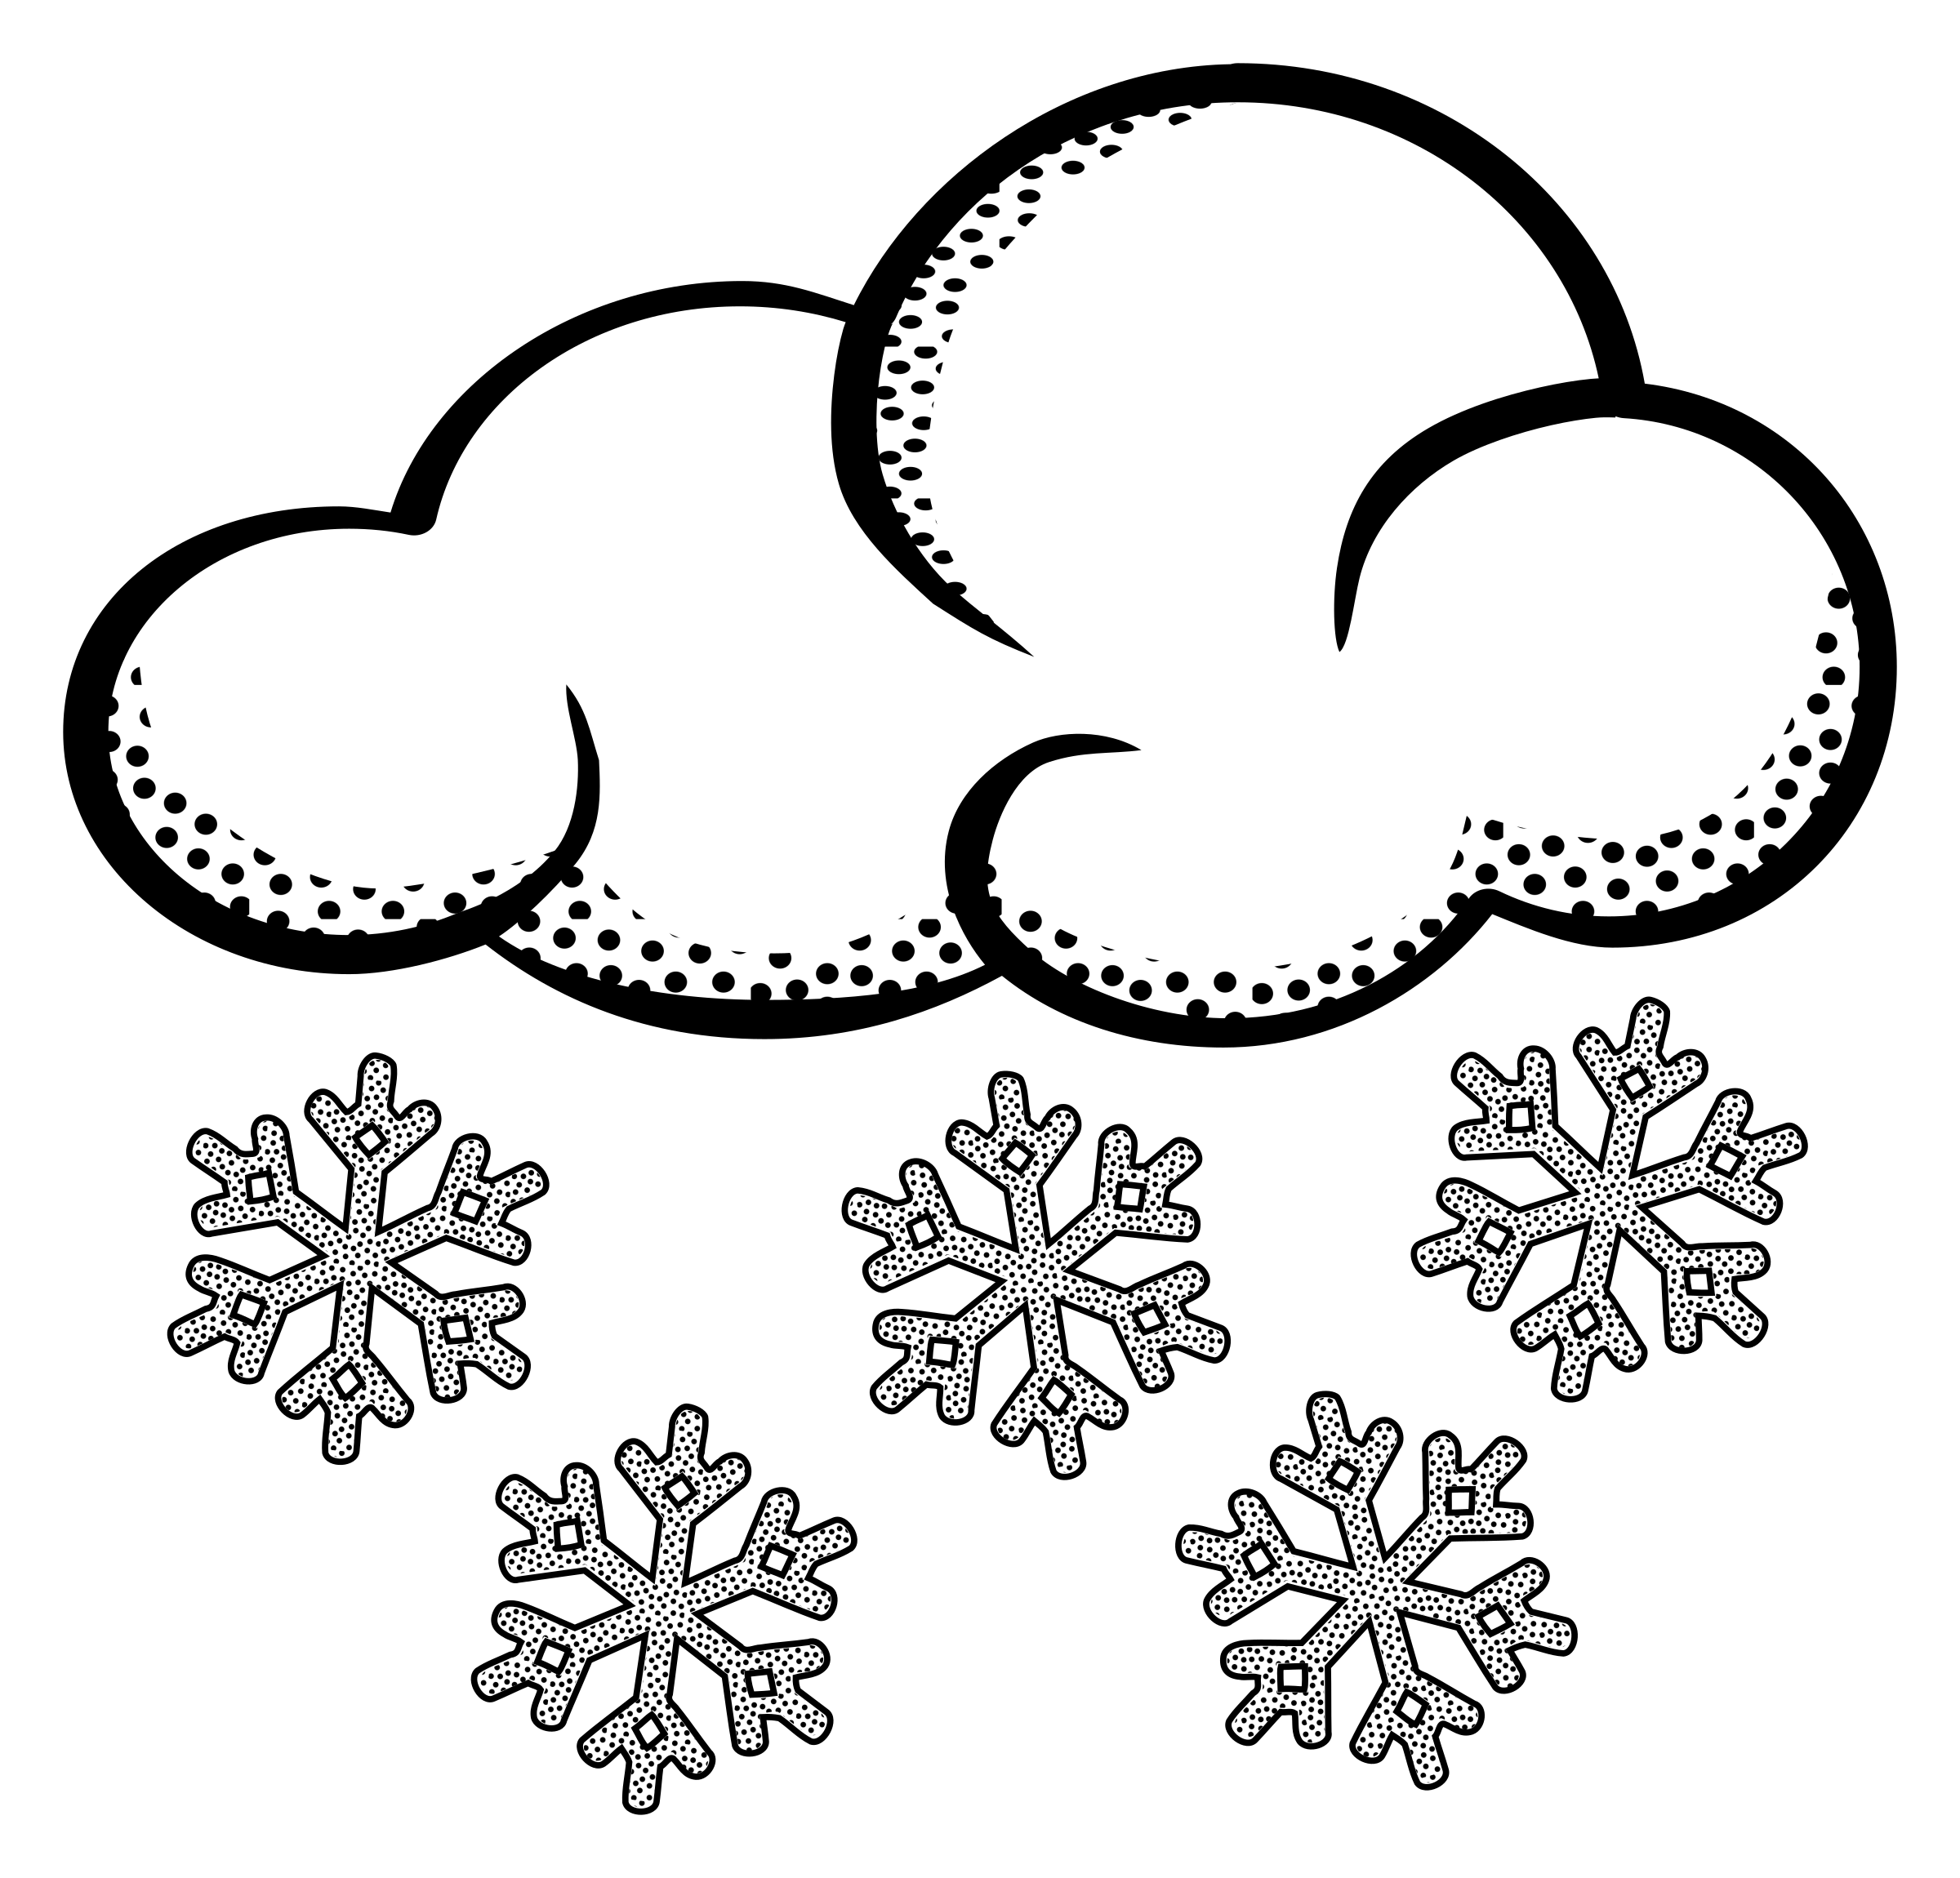 Oil clipart black and white. Snow drawing at getdrawings